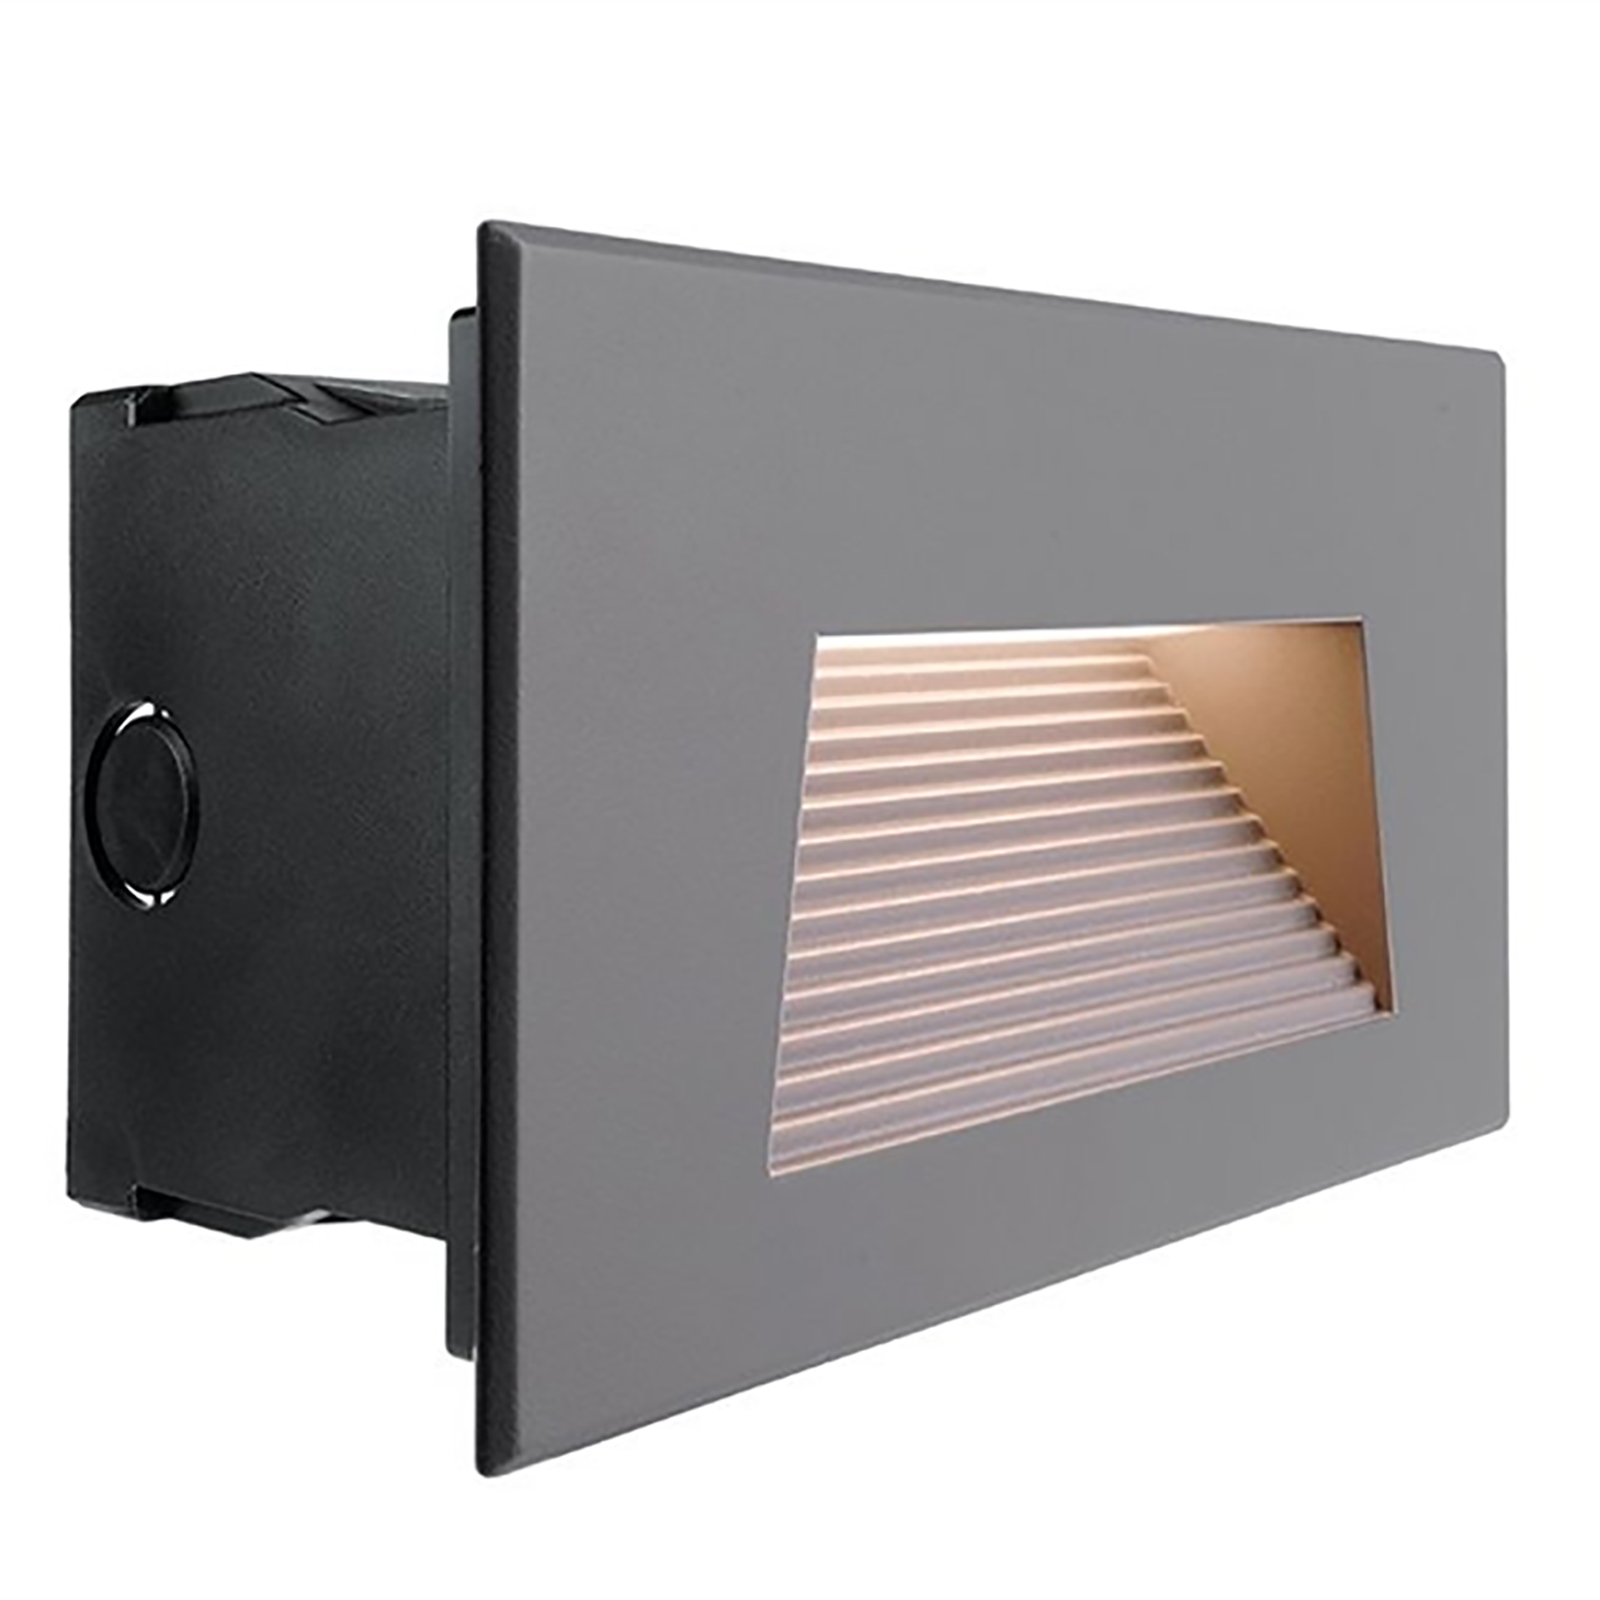 Segnapassi recessed rectangular LED 7W light external stairs garage 3000K IP65 230V